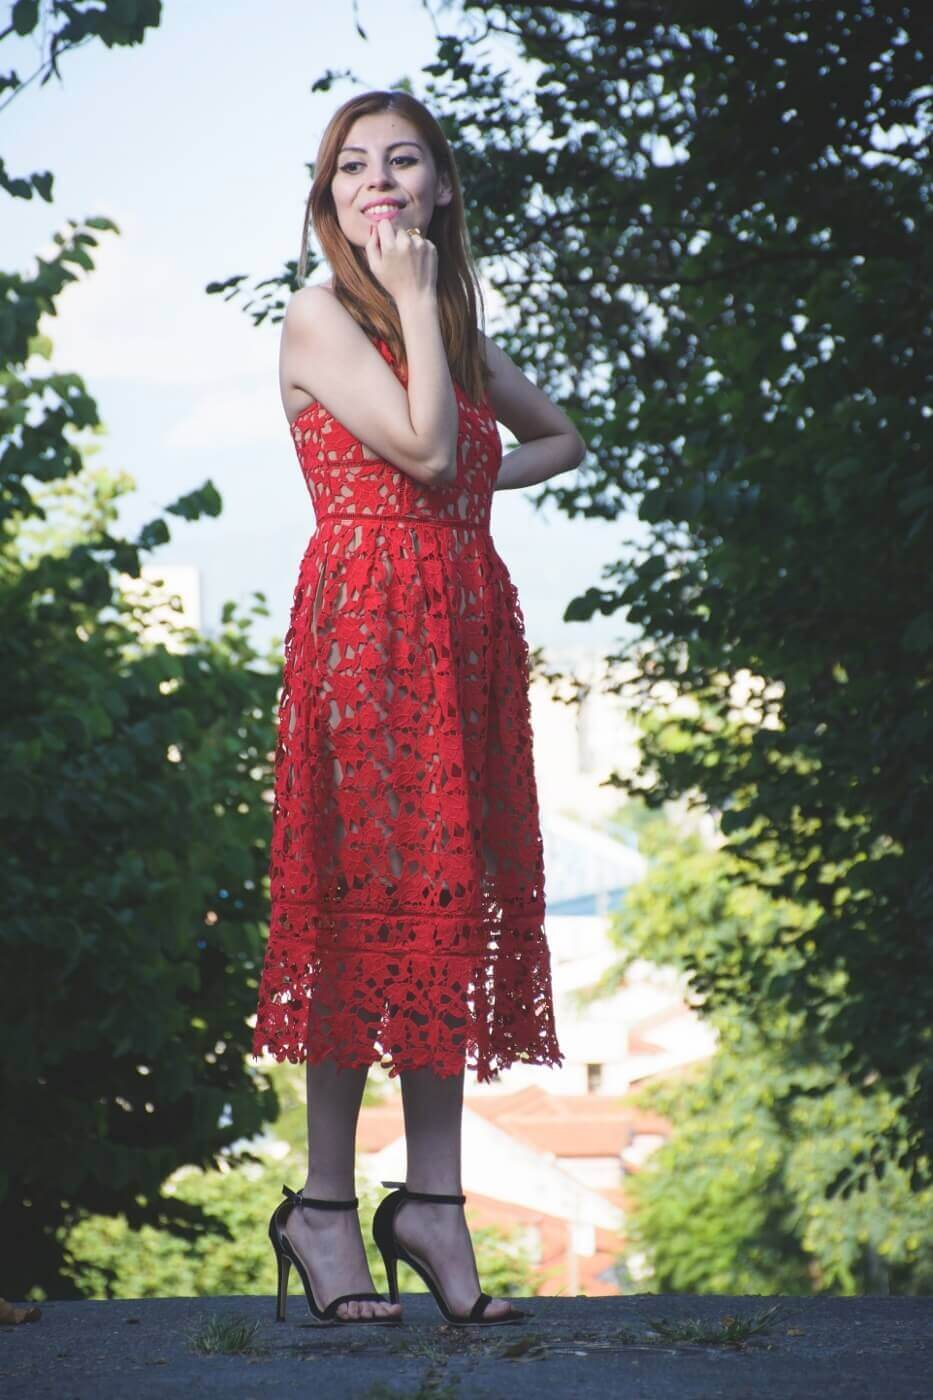 zaful red lace crochet midi lenght dress valentines day outfit ideas summer 2017 trends deborah ferrero style by deb05